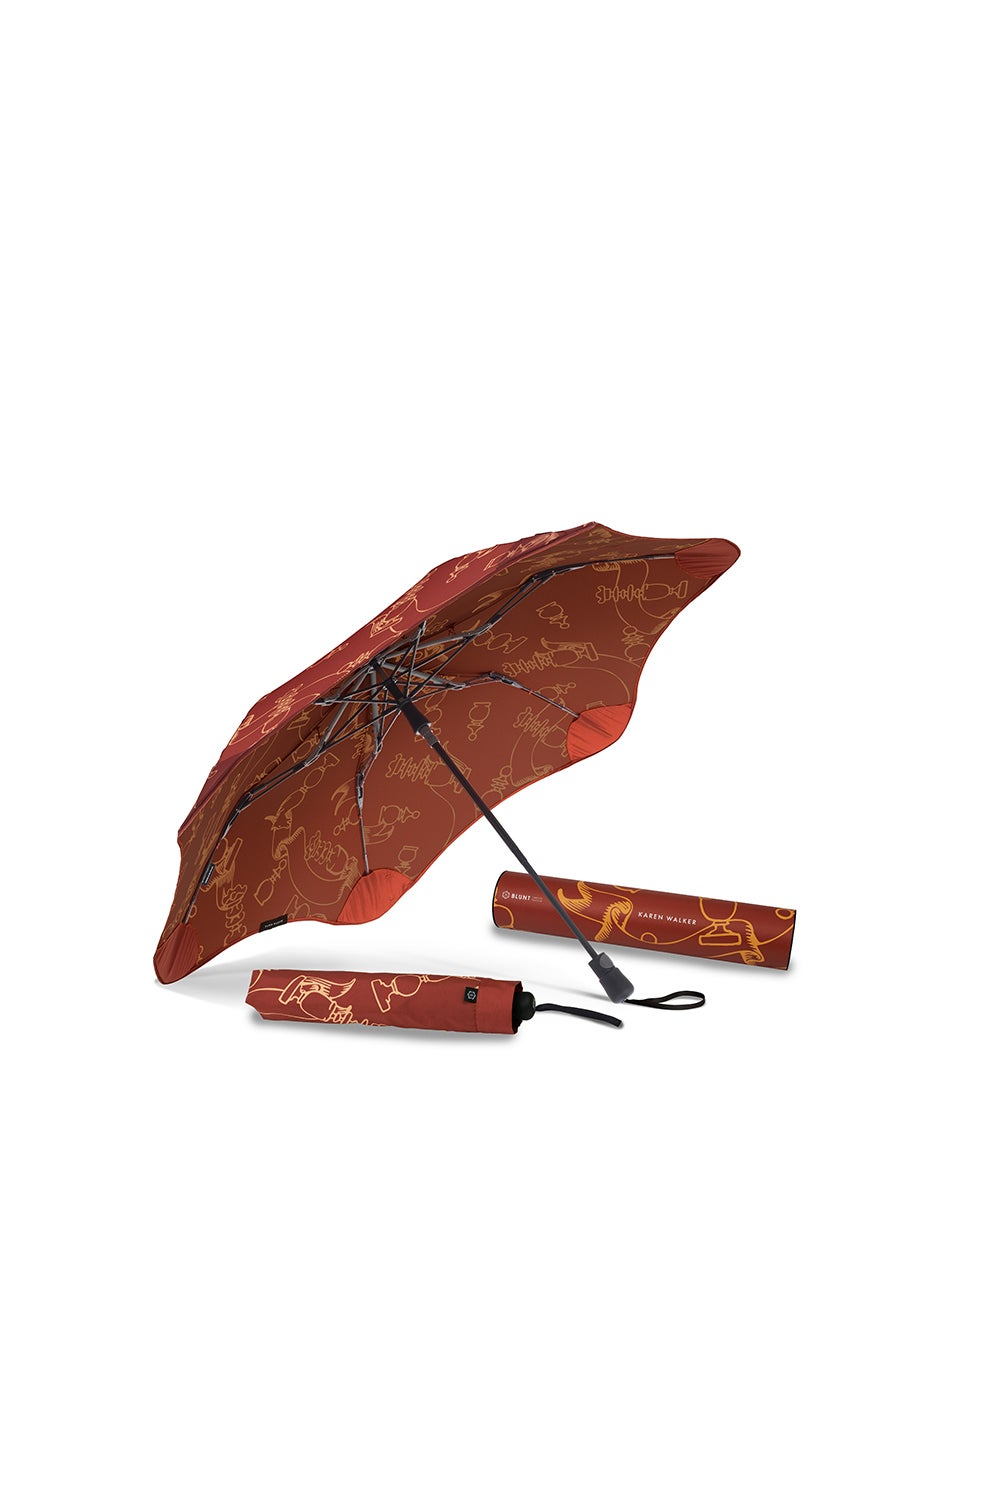 Limited Edition Karen Walker for Blunt XS Metro Grandmaster Umbrella